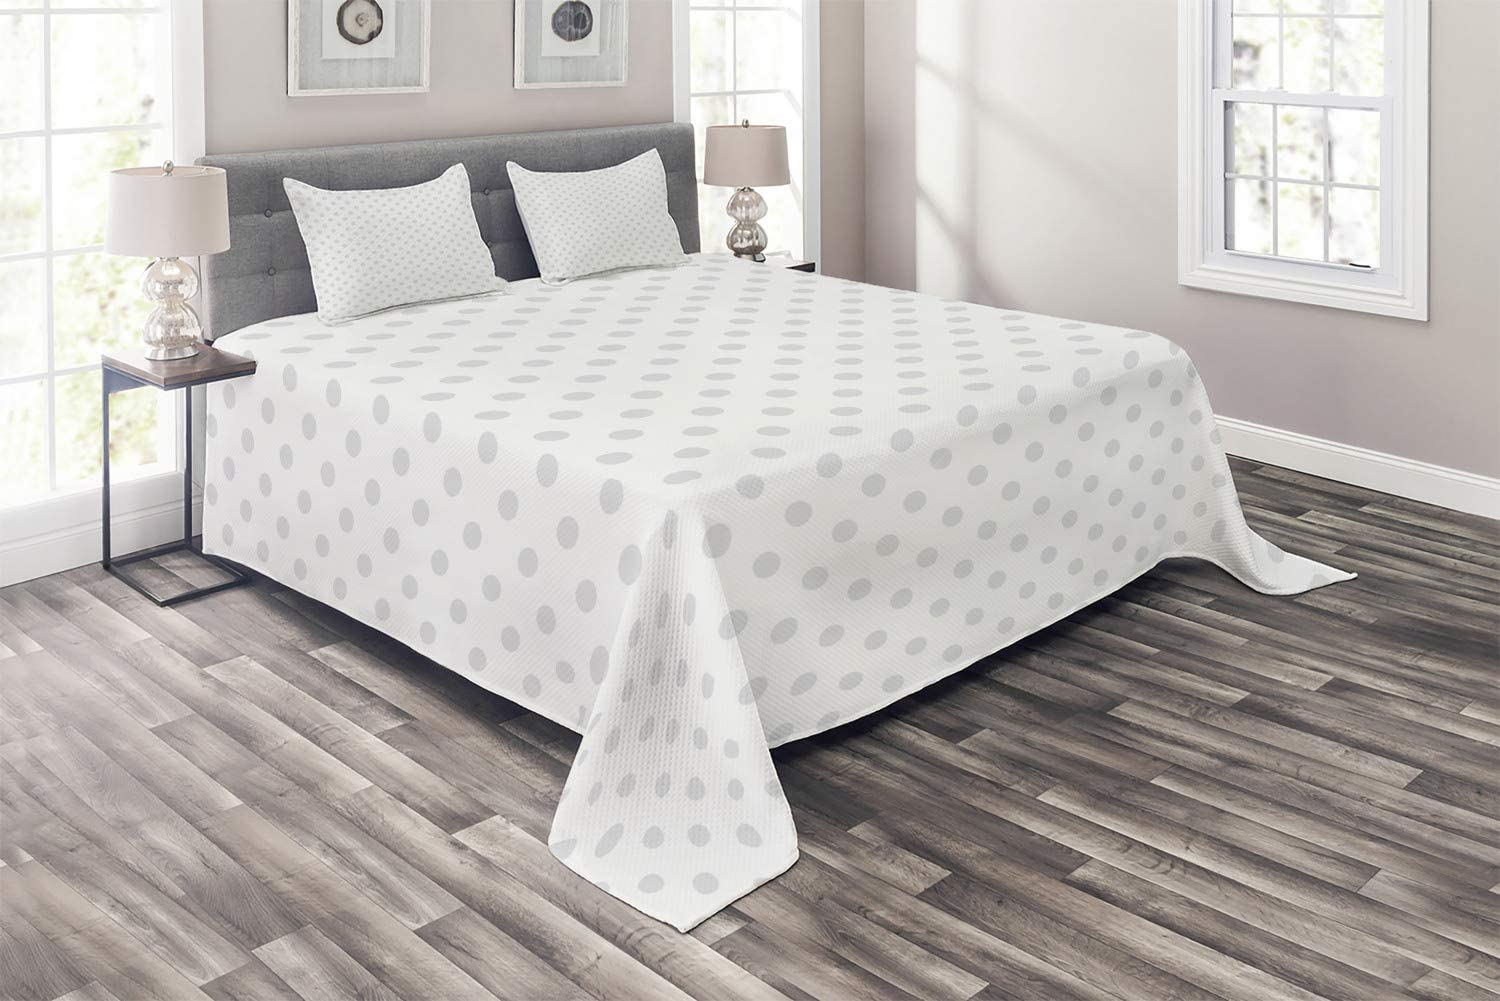 Ambesonne Grey Kansas City Mall Coverlet Small Polka White Backdrop Retr Max 55% OFF Dots on